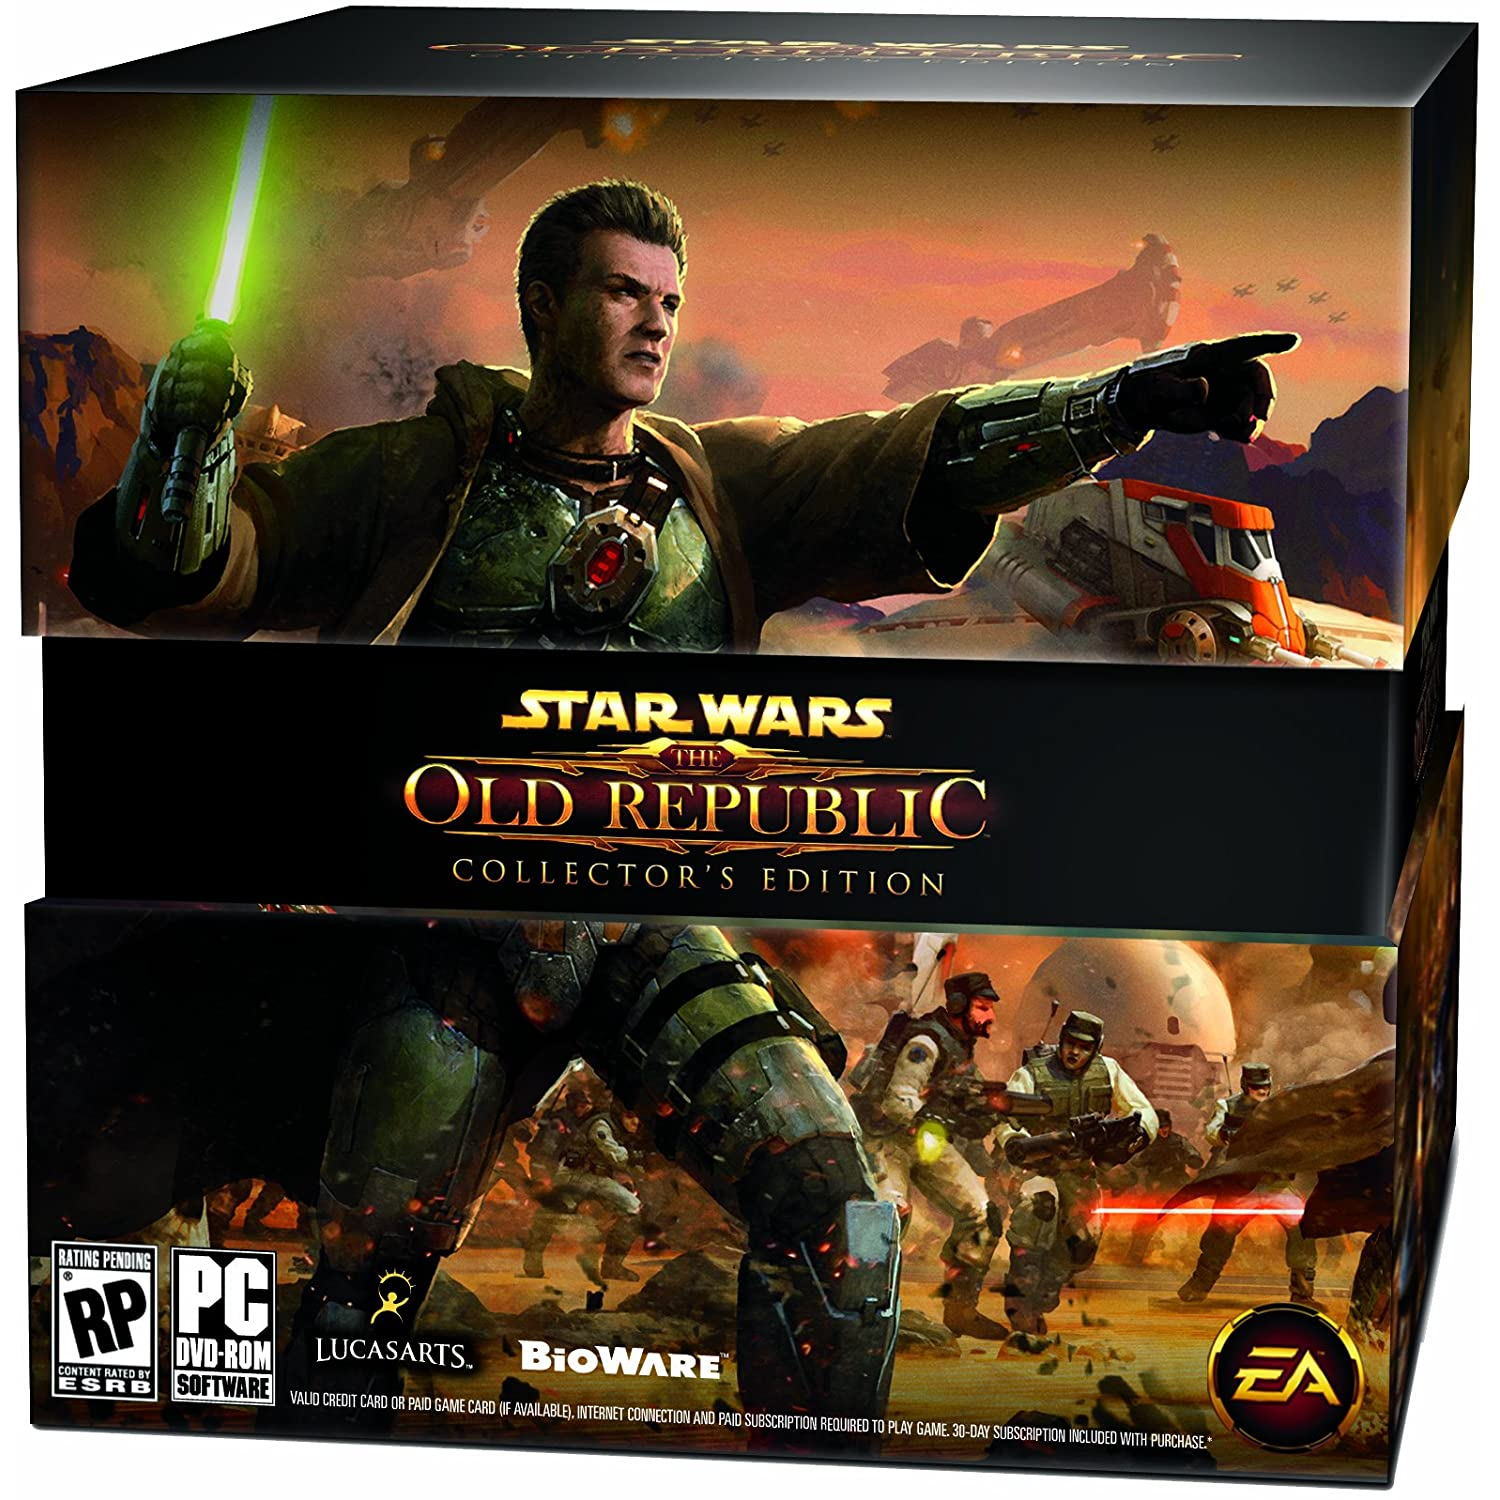 Online Game, Online Games, Video Game, Video Games, PC, Action, Star Wars, mmorpg, Star Wars: The Old Republic